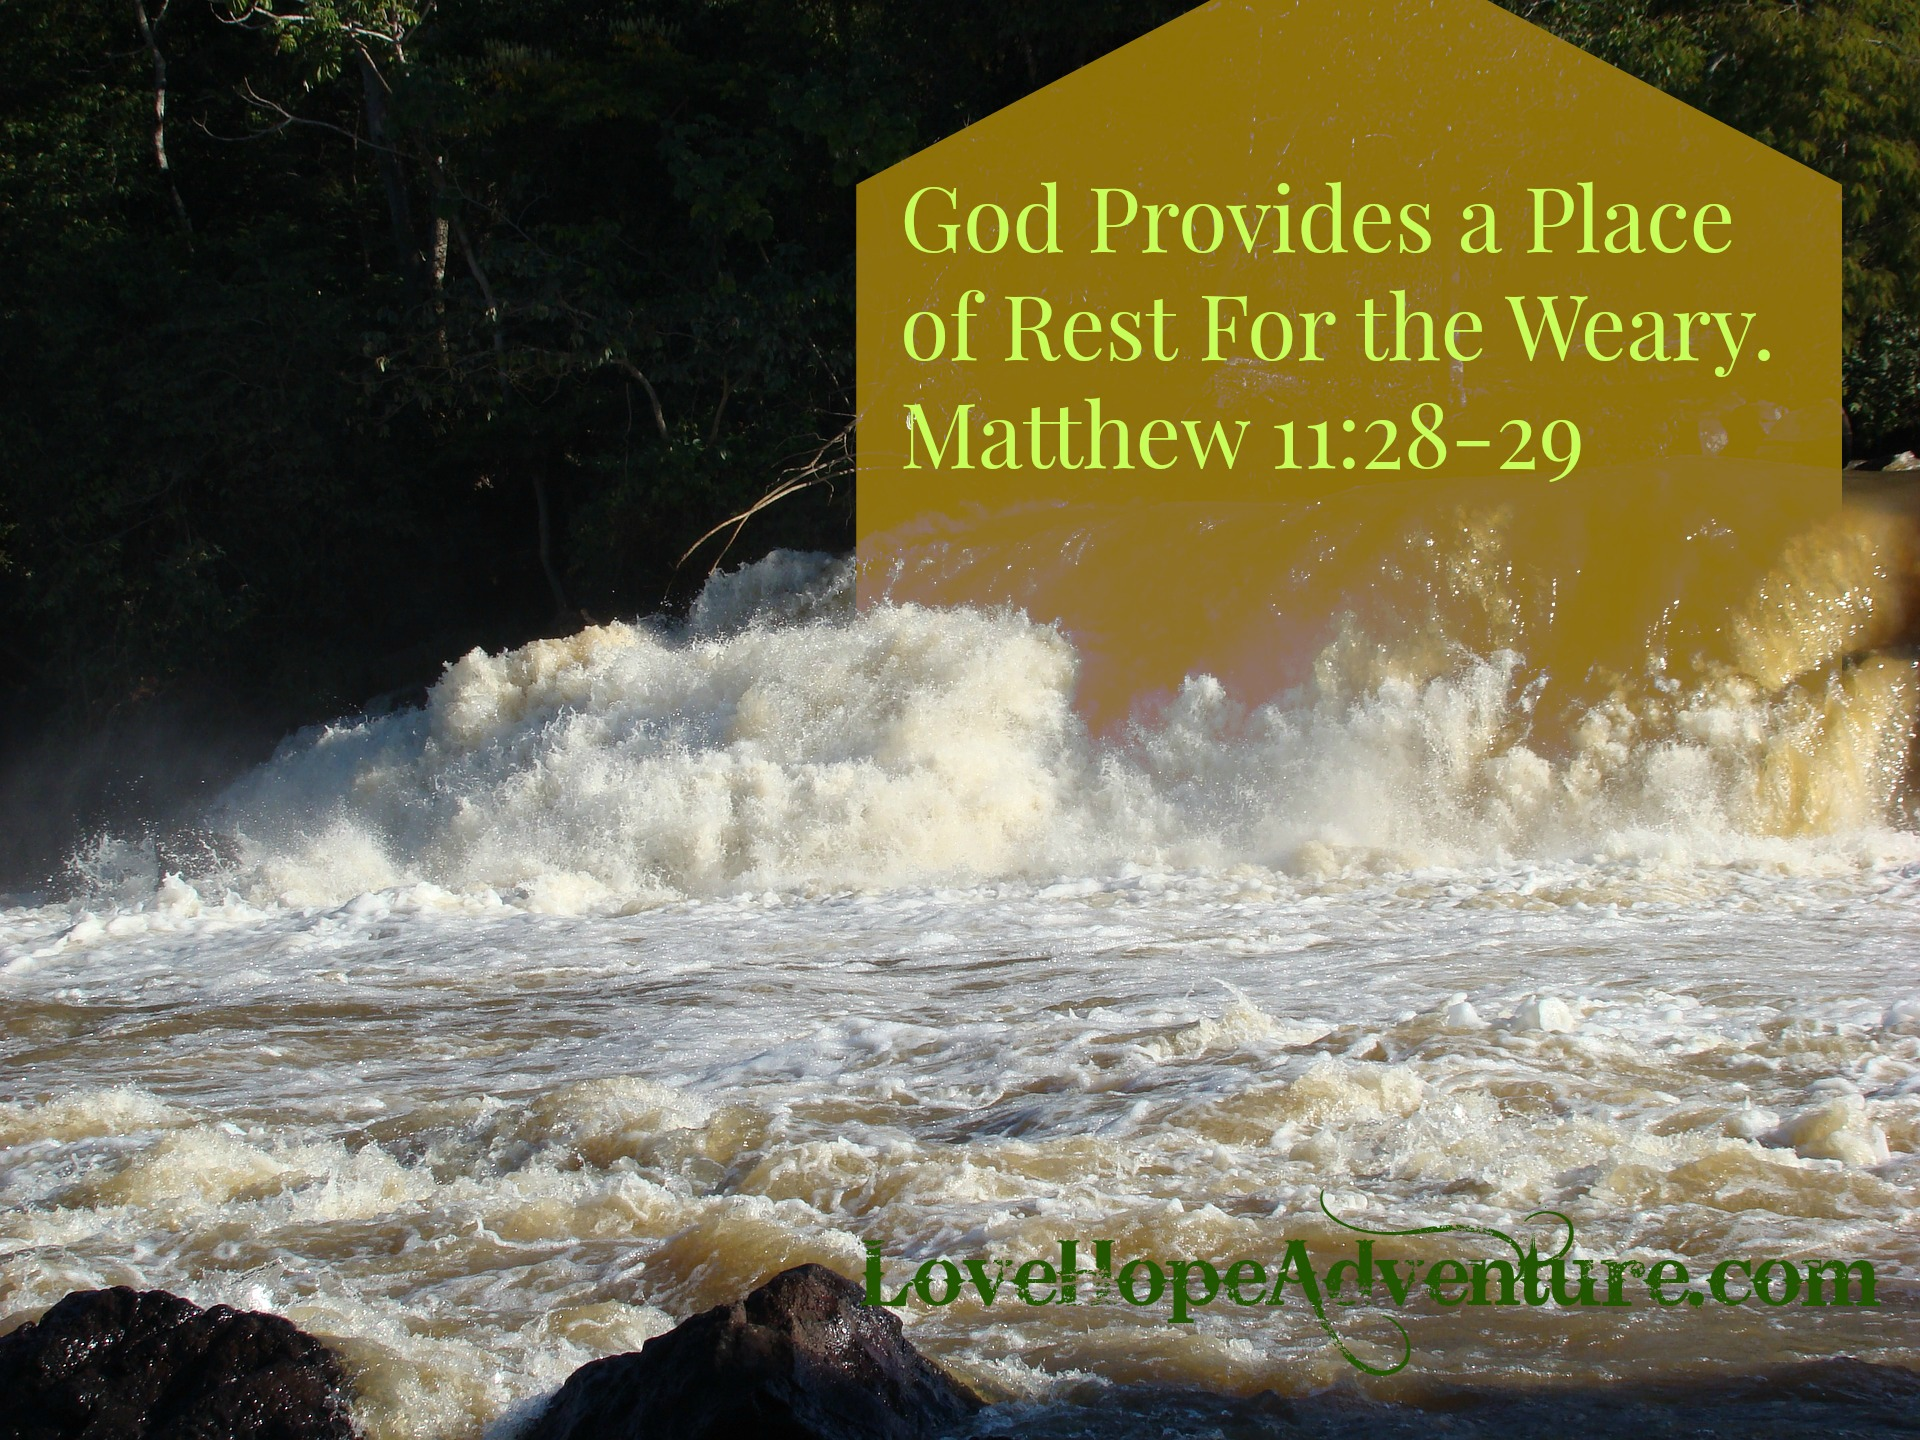 God Provides a Place of Rest For the Weary